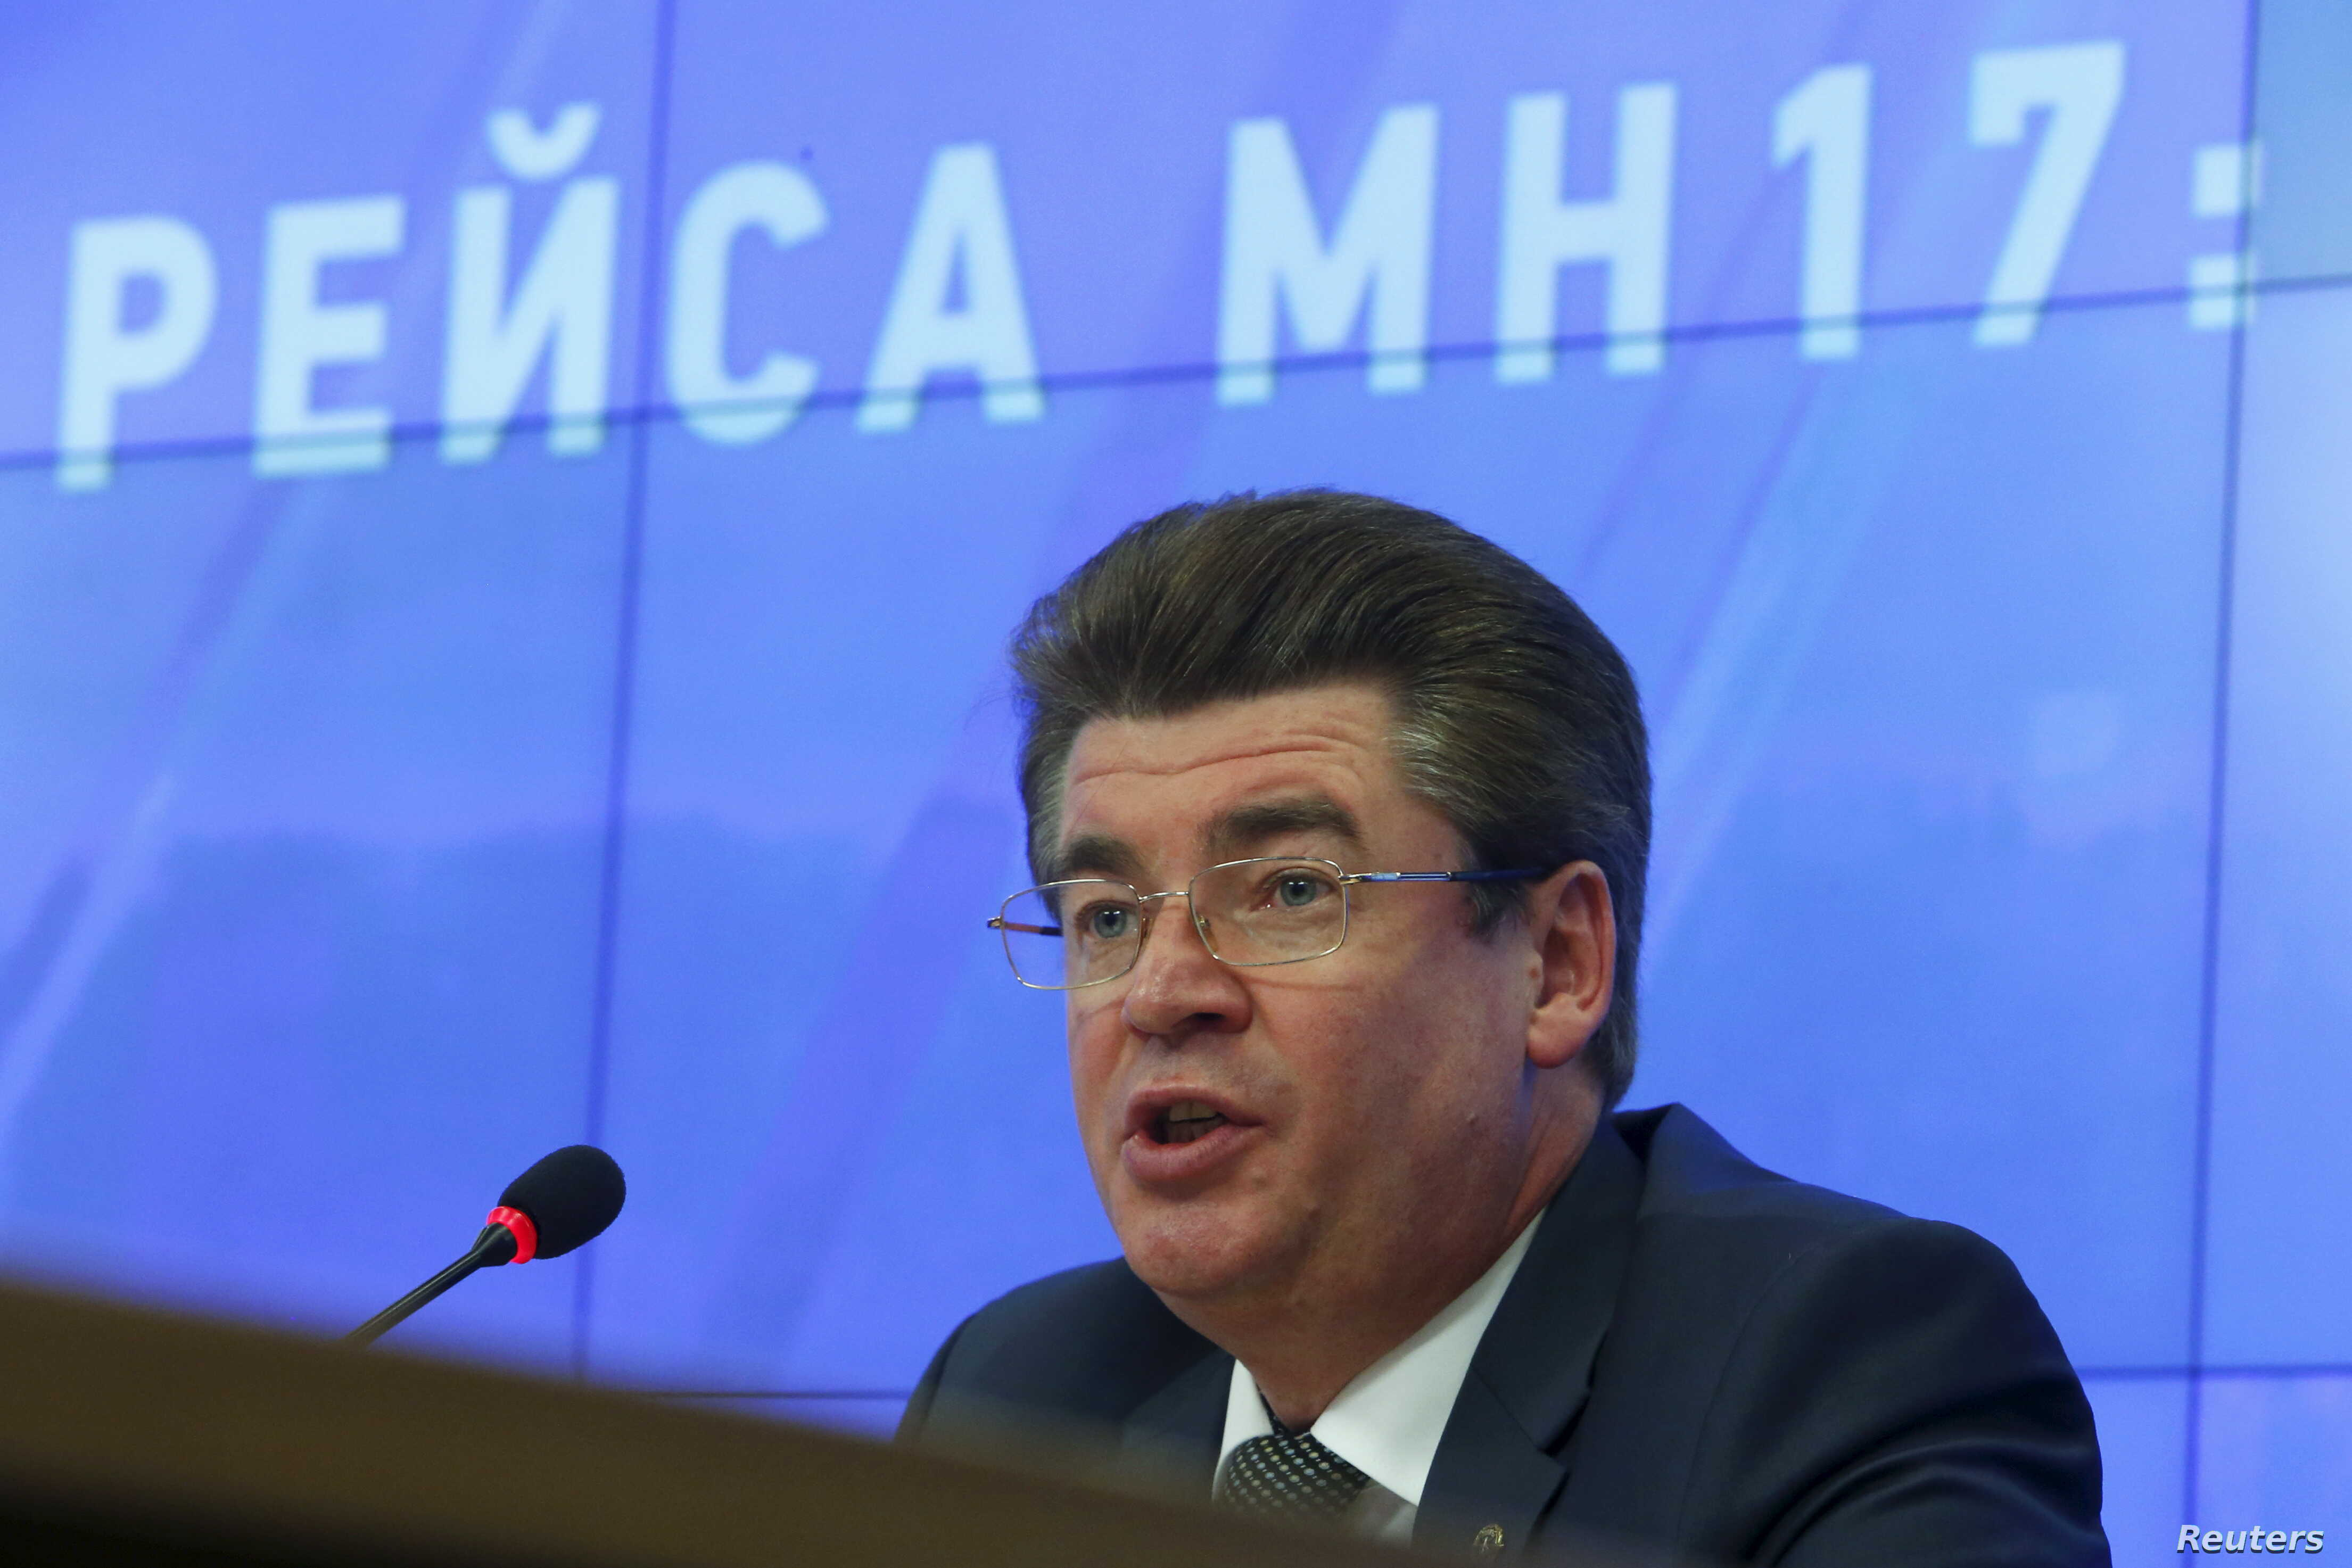 Oleg Storchevoy, deputy head of Russian Federal Aviation Agency Rosaviatsiya, is seen speaking at a news conference on the downing of Malaysian Airlines flight MH17, in Moscow, Russia, July 16, 2015.